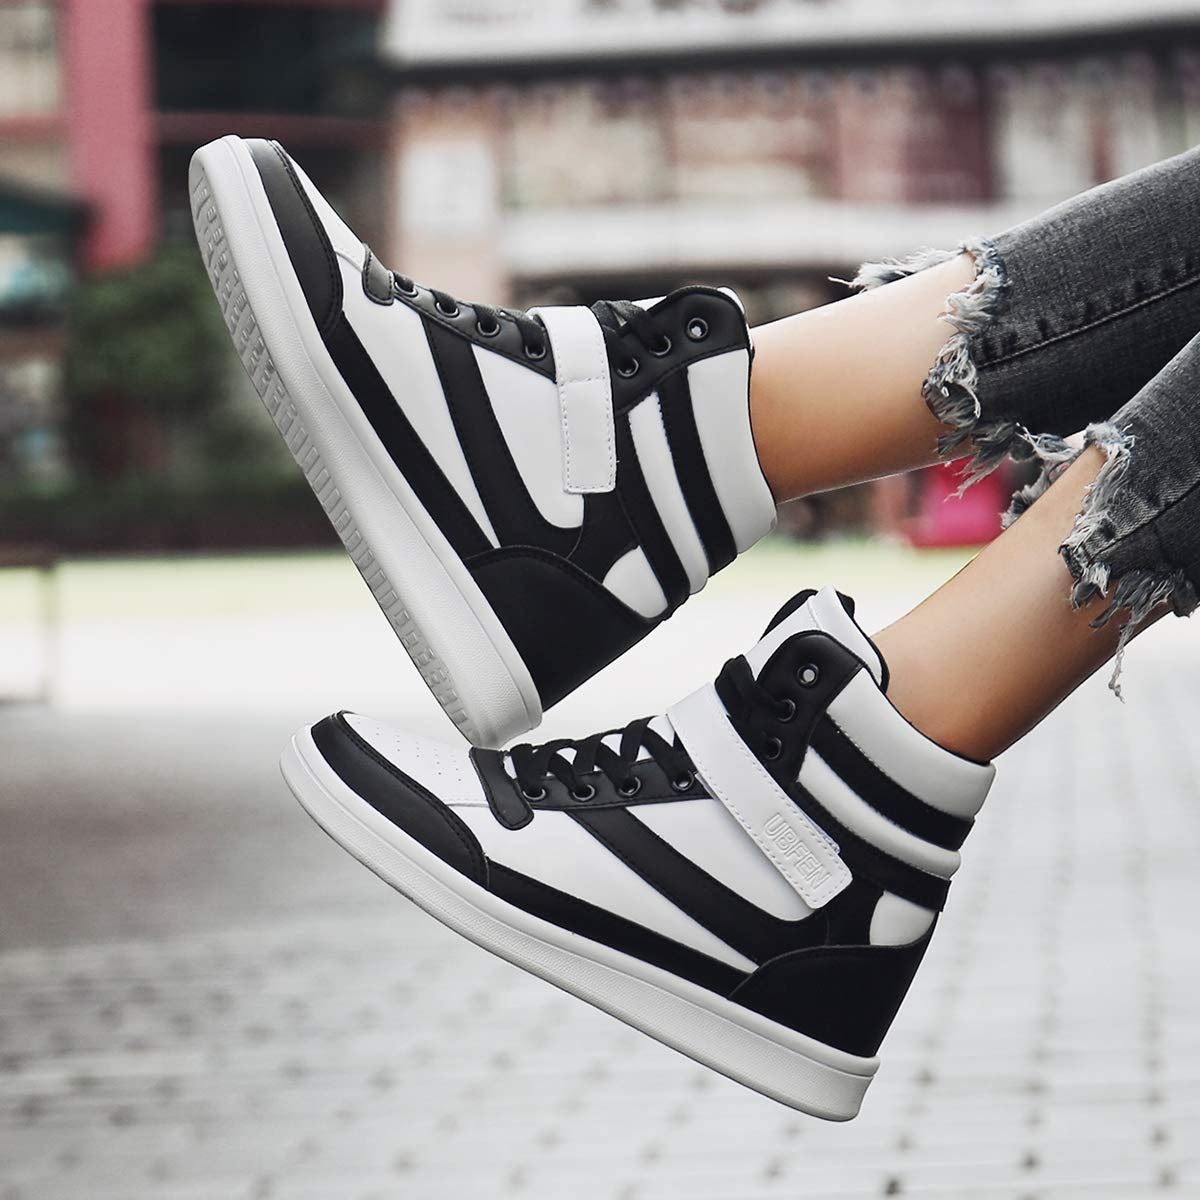 c161543a8e59 UBFEN Women s Shoes Hidden Wedge Heel 5.5cm Fashion Sneakers Trainers  Sports Booties Ankle Boots High larger image